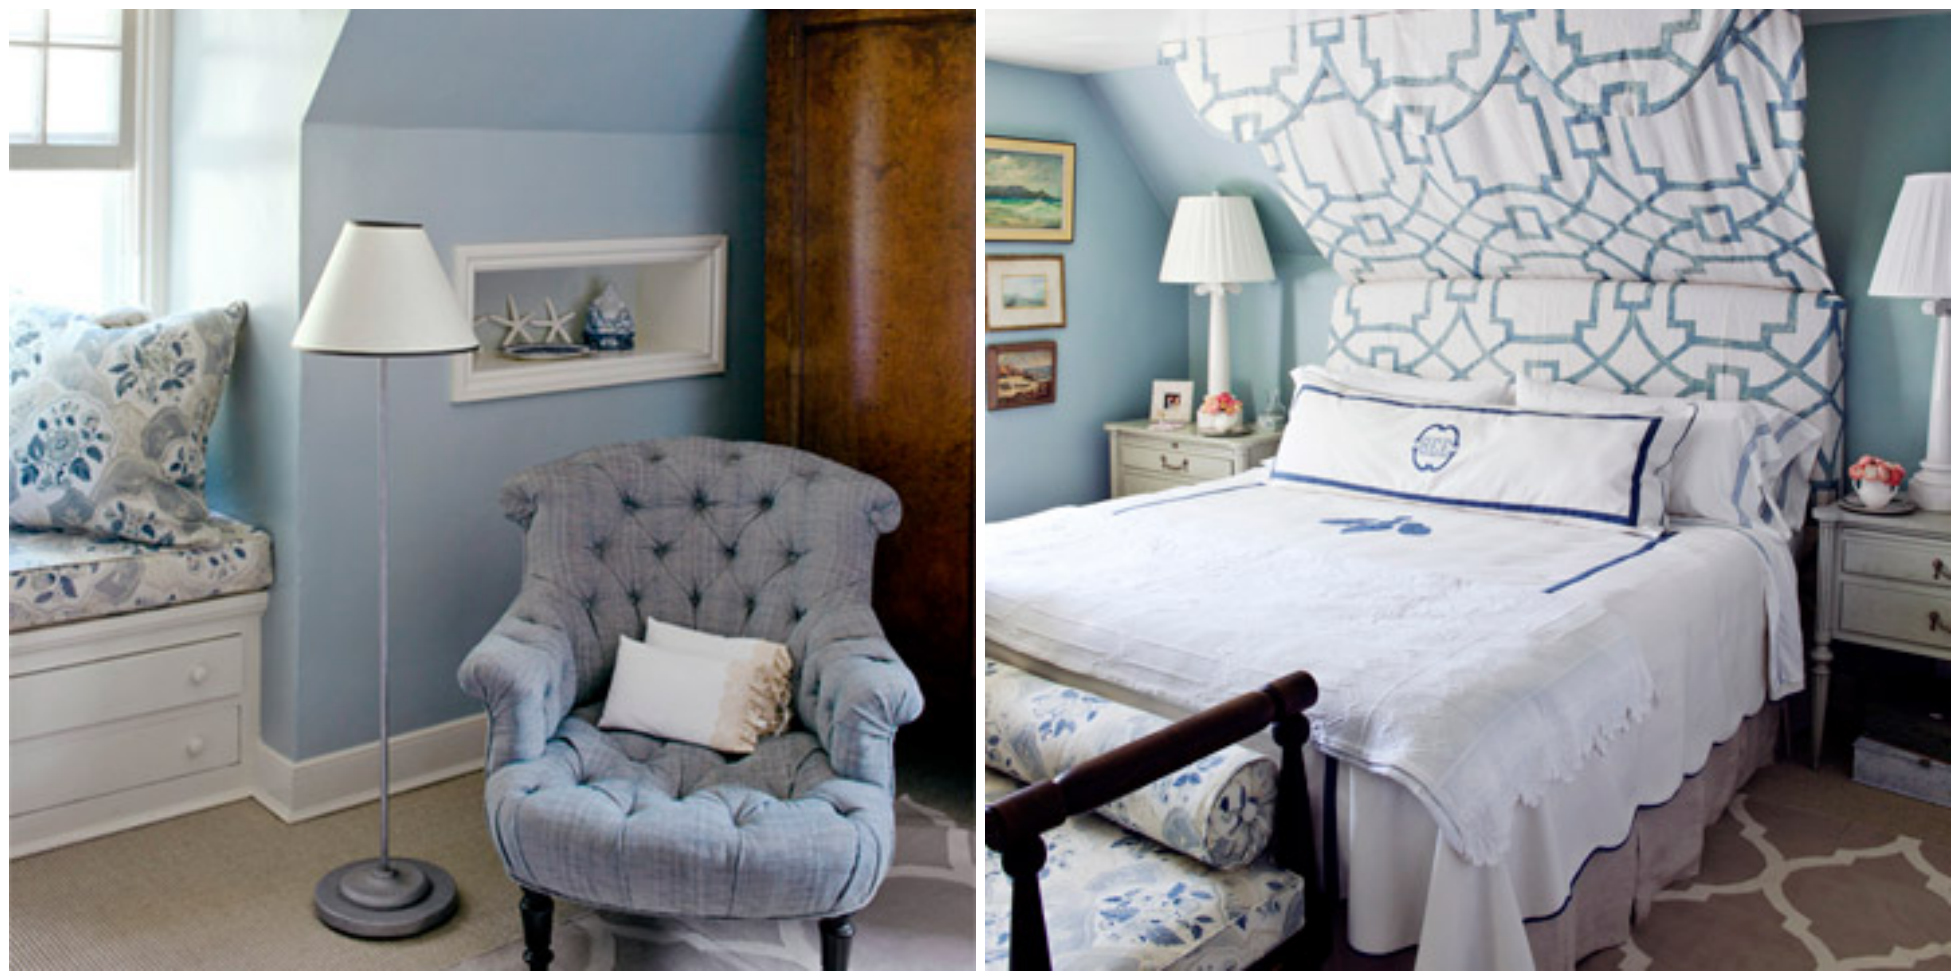 Bedroom Before and After s Master Bedroom Makeover